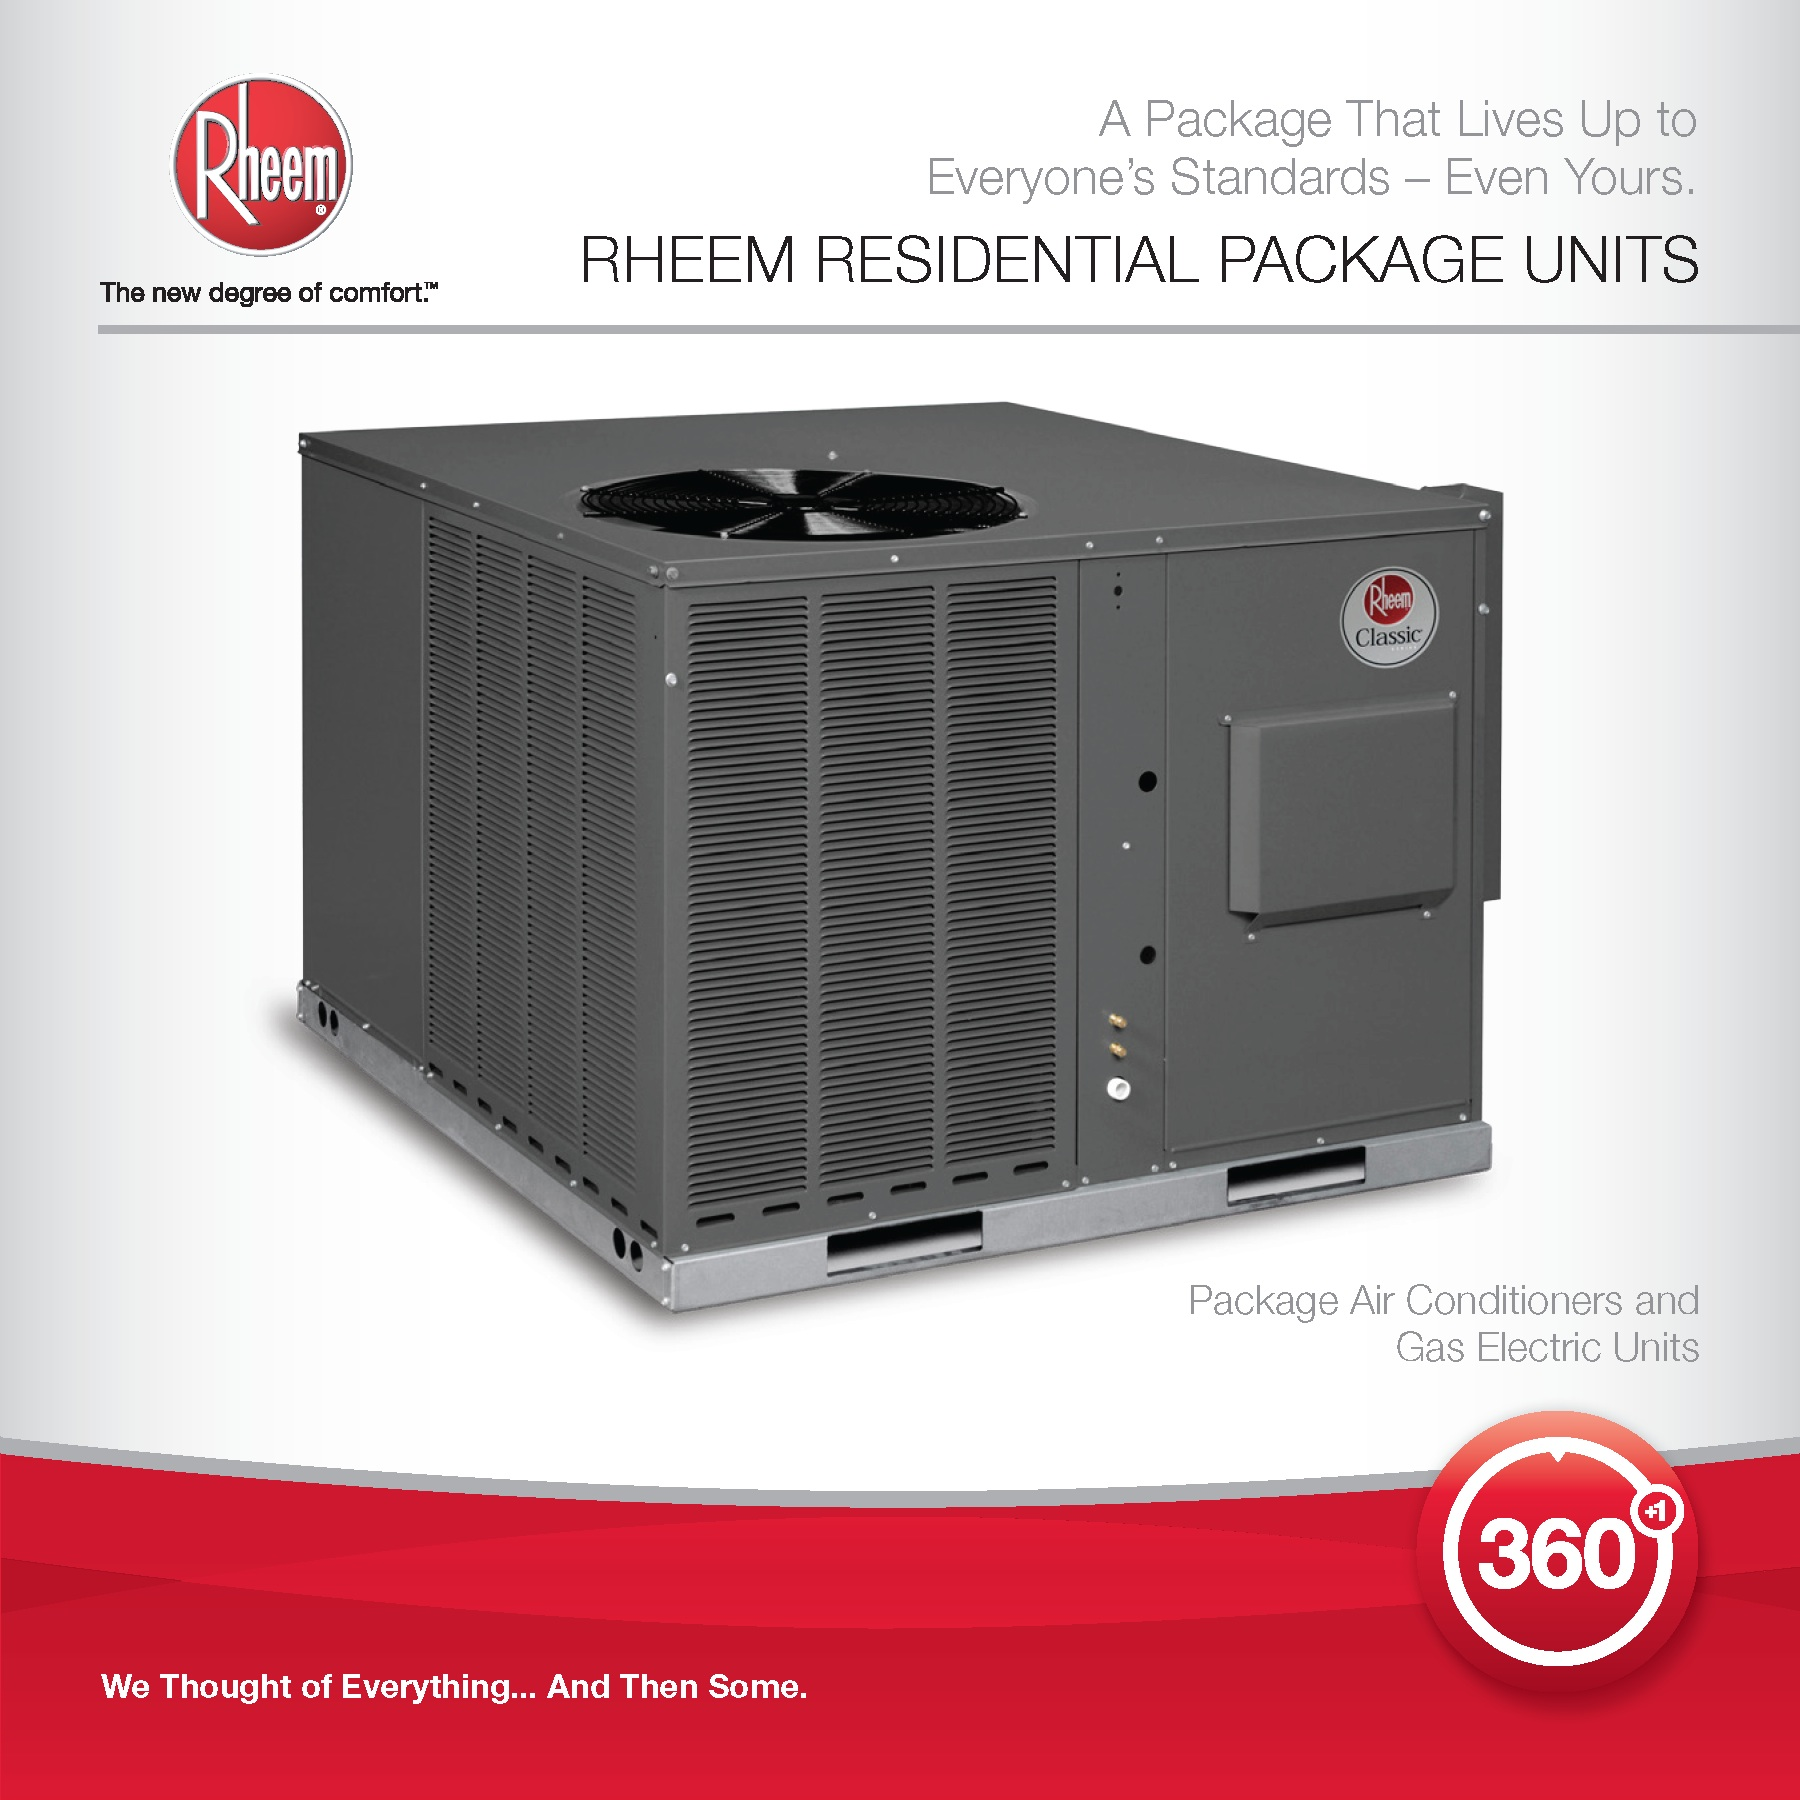 #B61529 Rheem Product Recall Information 2017 2018 Car Release Date Brand New 1481 Best Rated Hvac Systems images with 1800x1800 px on helpvideos.info - Air Conditioners, Air Coolers and more